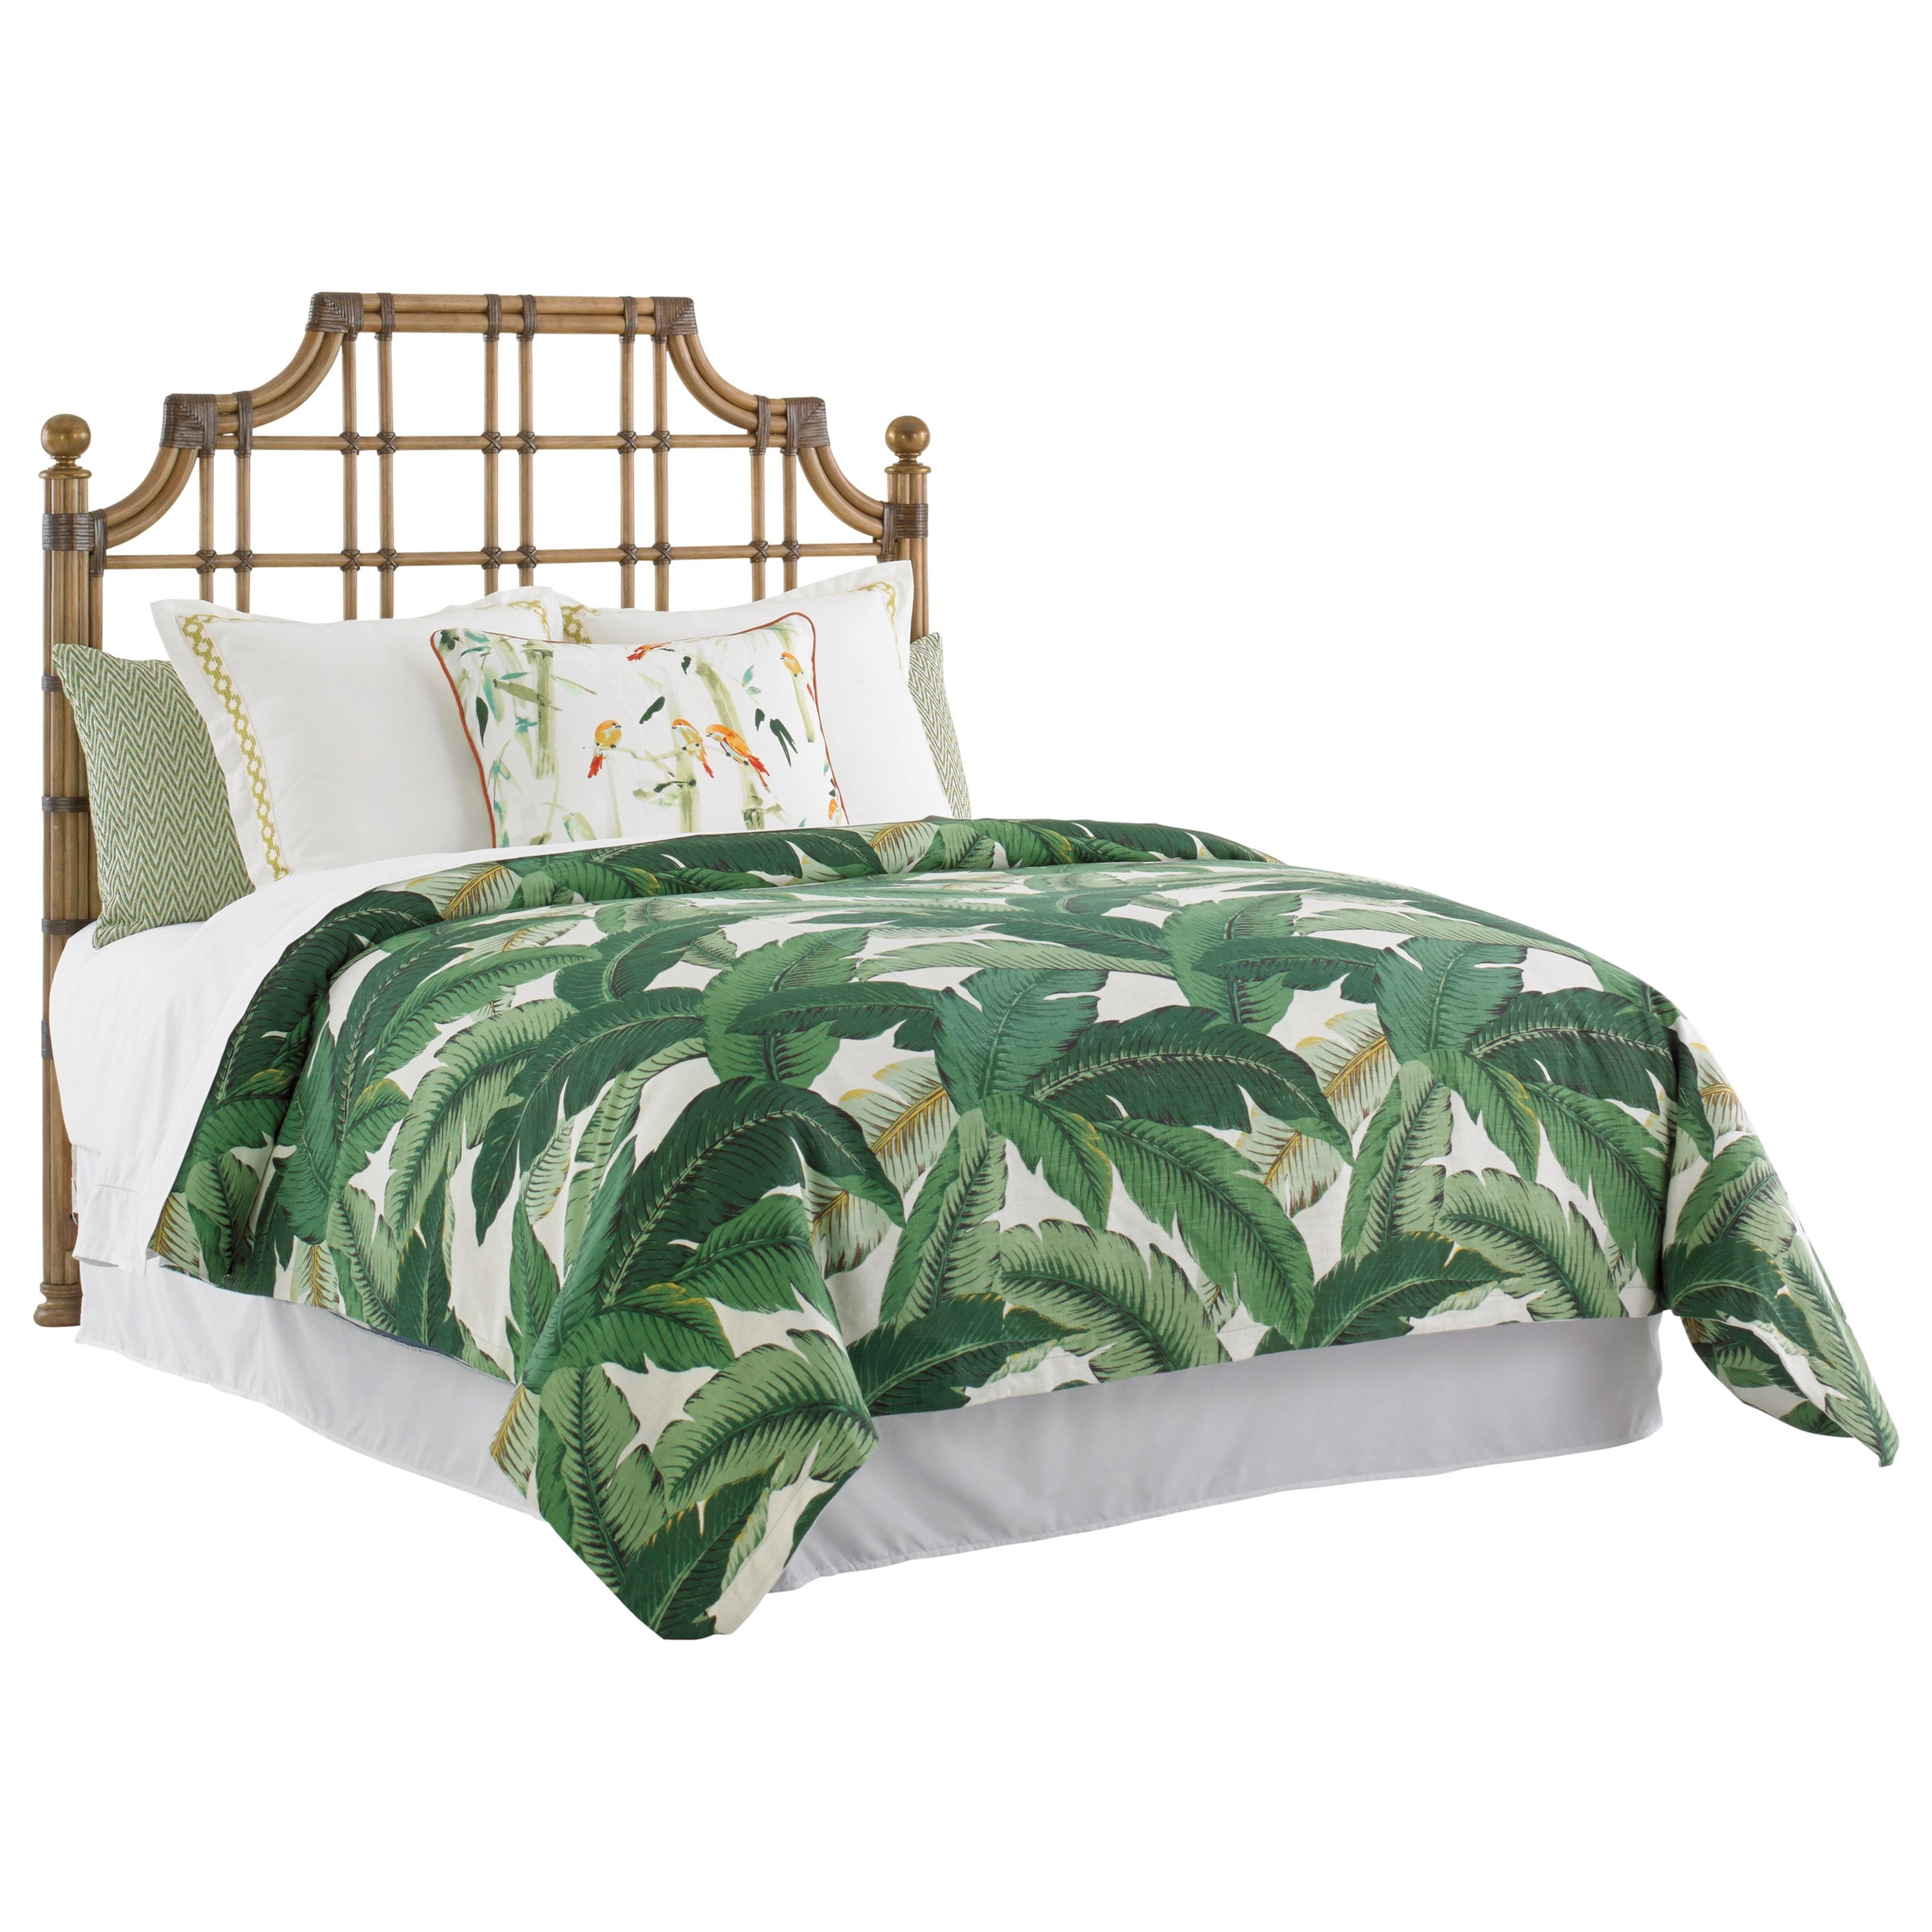 Tommy Bahama Home Twin Palms St. Kitts Queen Sized Headboard - Item Number: 558-143HB